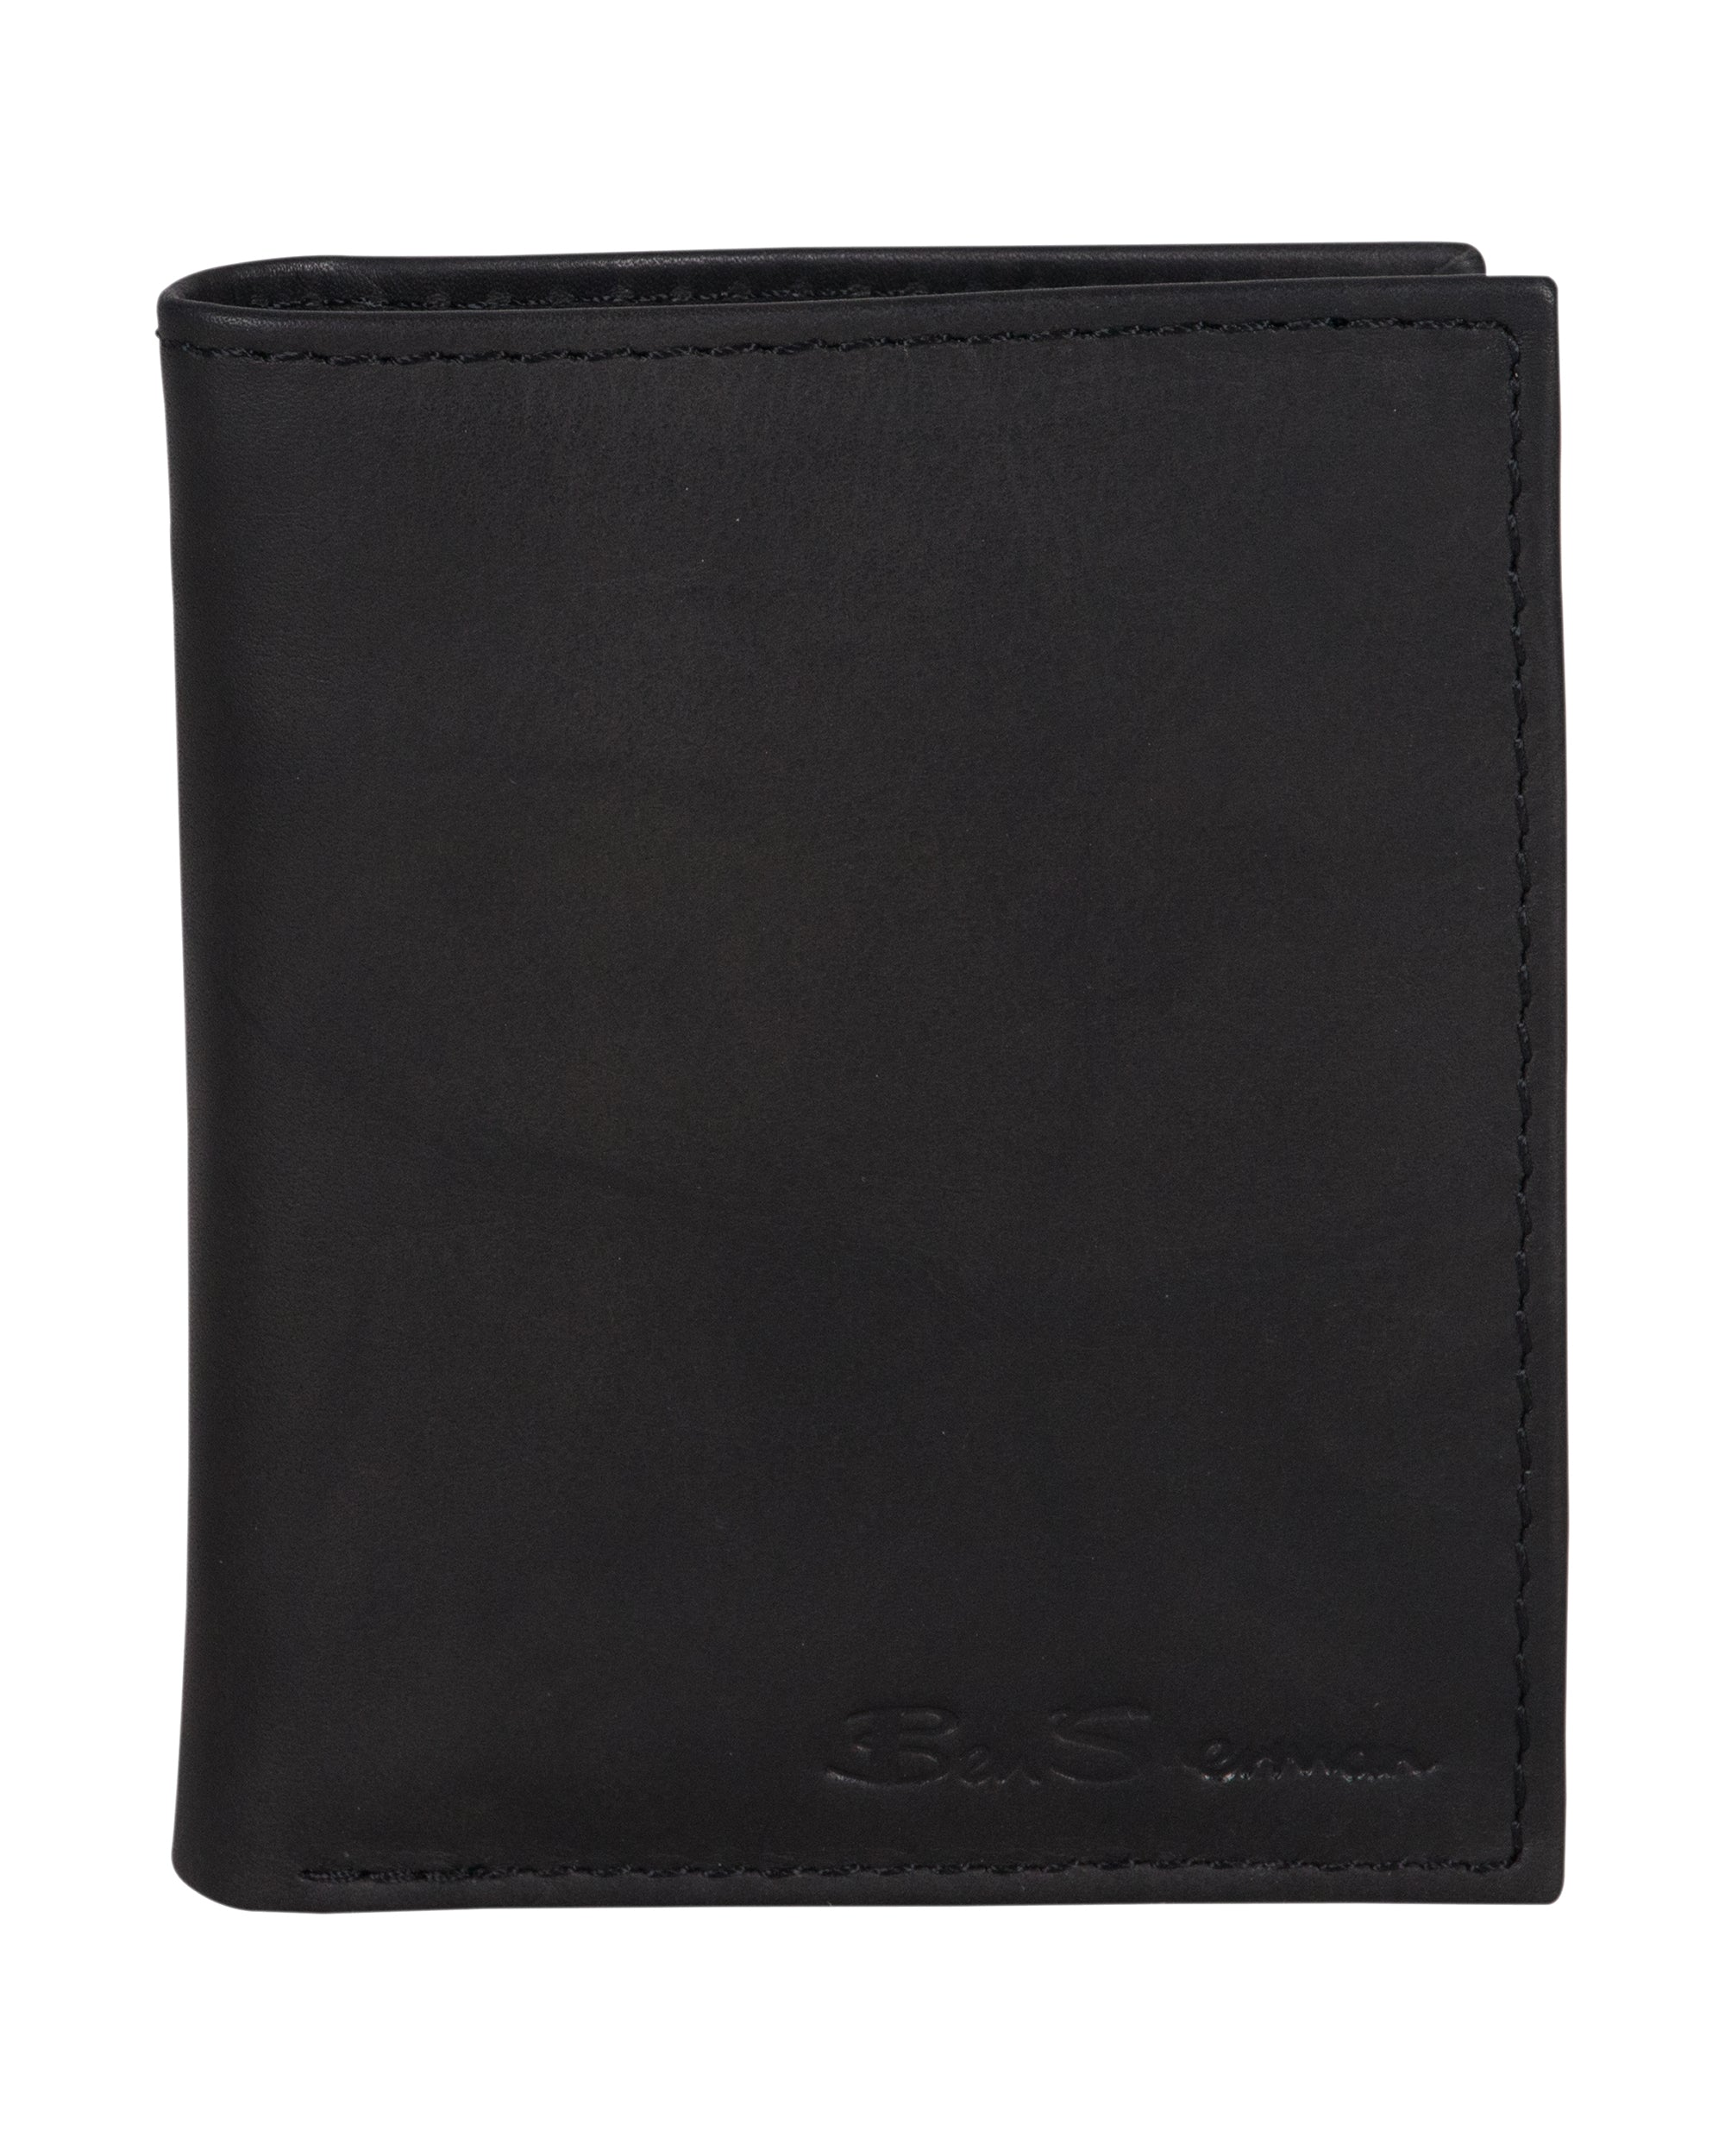 Manchester Marble Crunch Leather Bifold Wallet with Pull Tab - Black